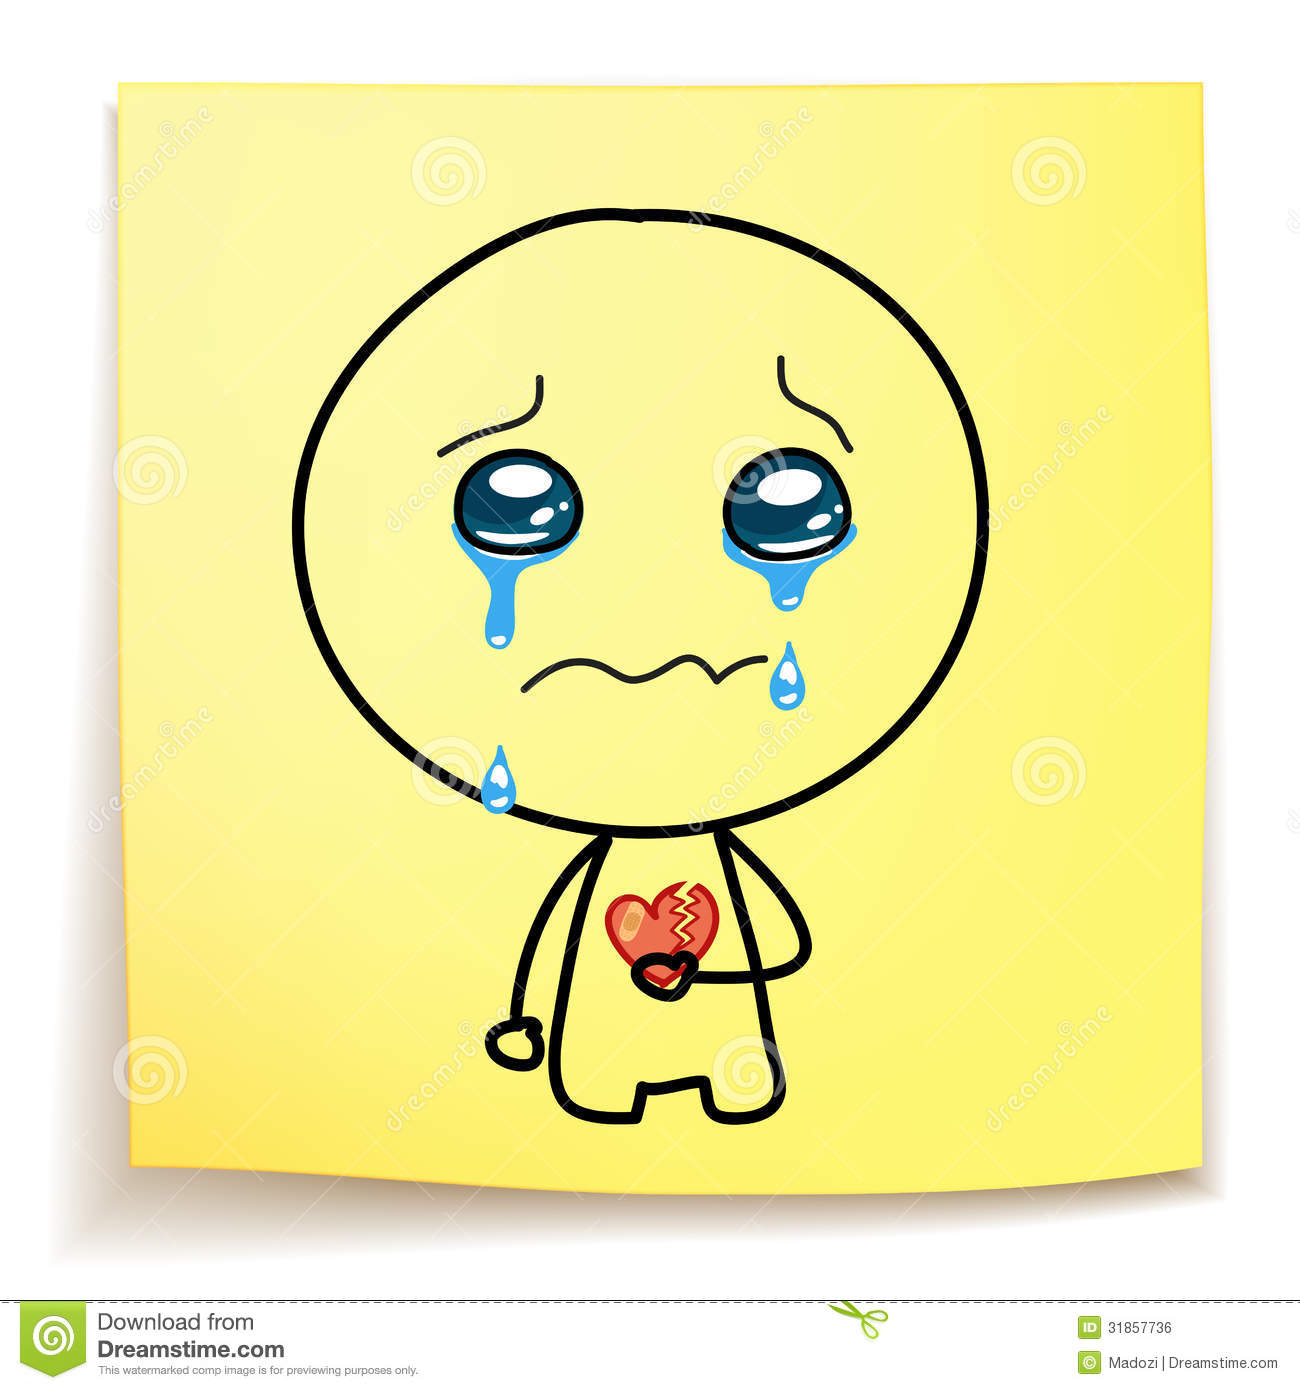 Cartoon Broken Heart Crying